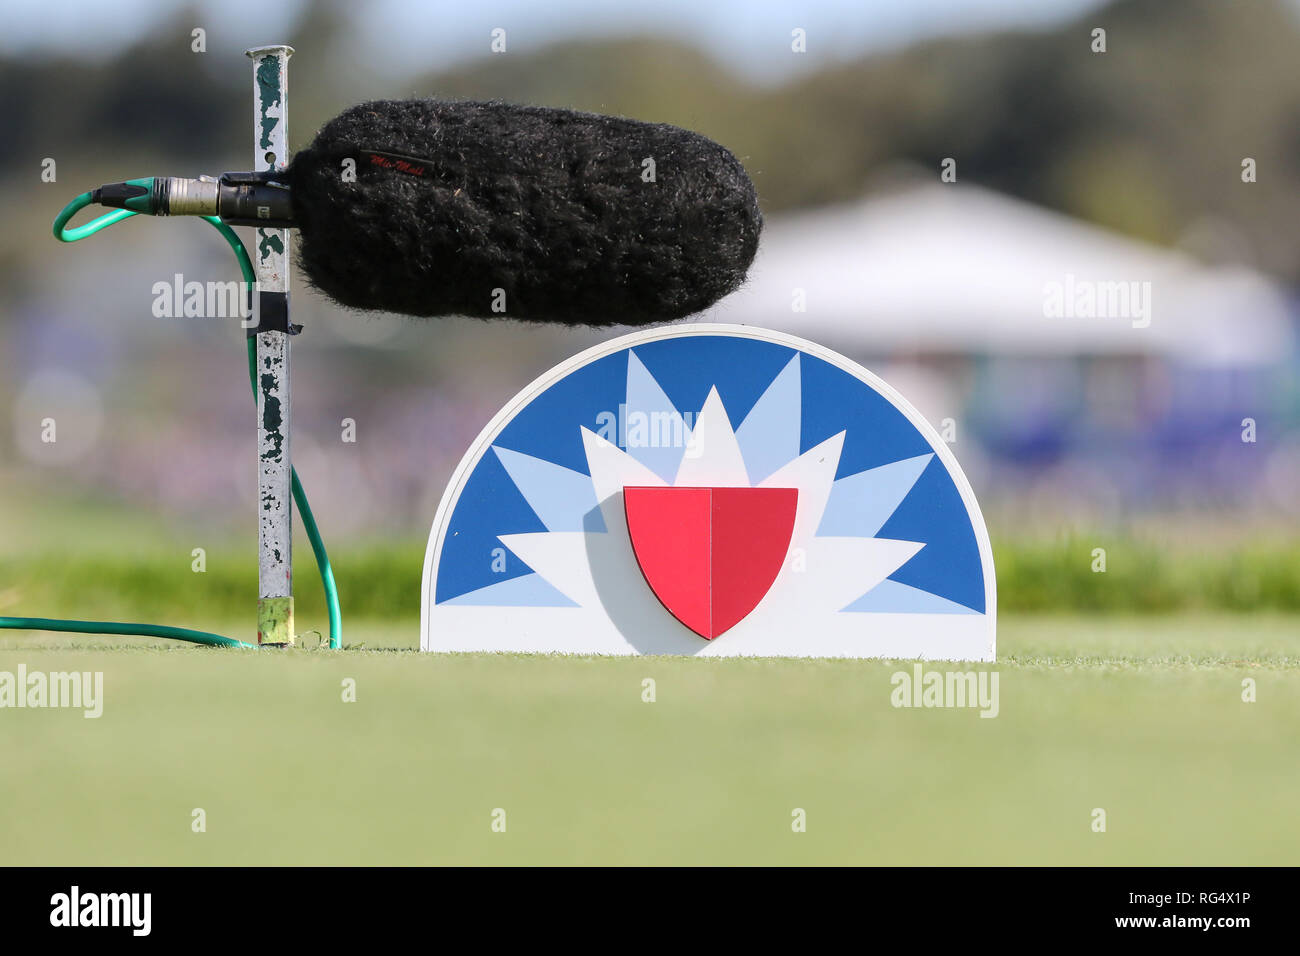 San Diego, California, USA. 27th Jan, 2019. Farmers logo tee marker and microphone during final round of the Farmers Open at Torrey Pines golf course in San Diego, Ca on January 27, 2019. Jevone Moore Credit: csm/Alamy Live News - Stock Image